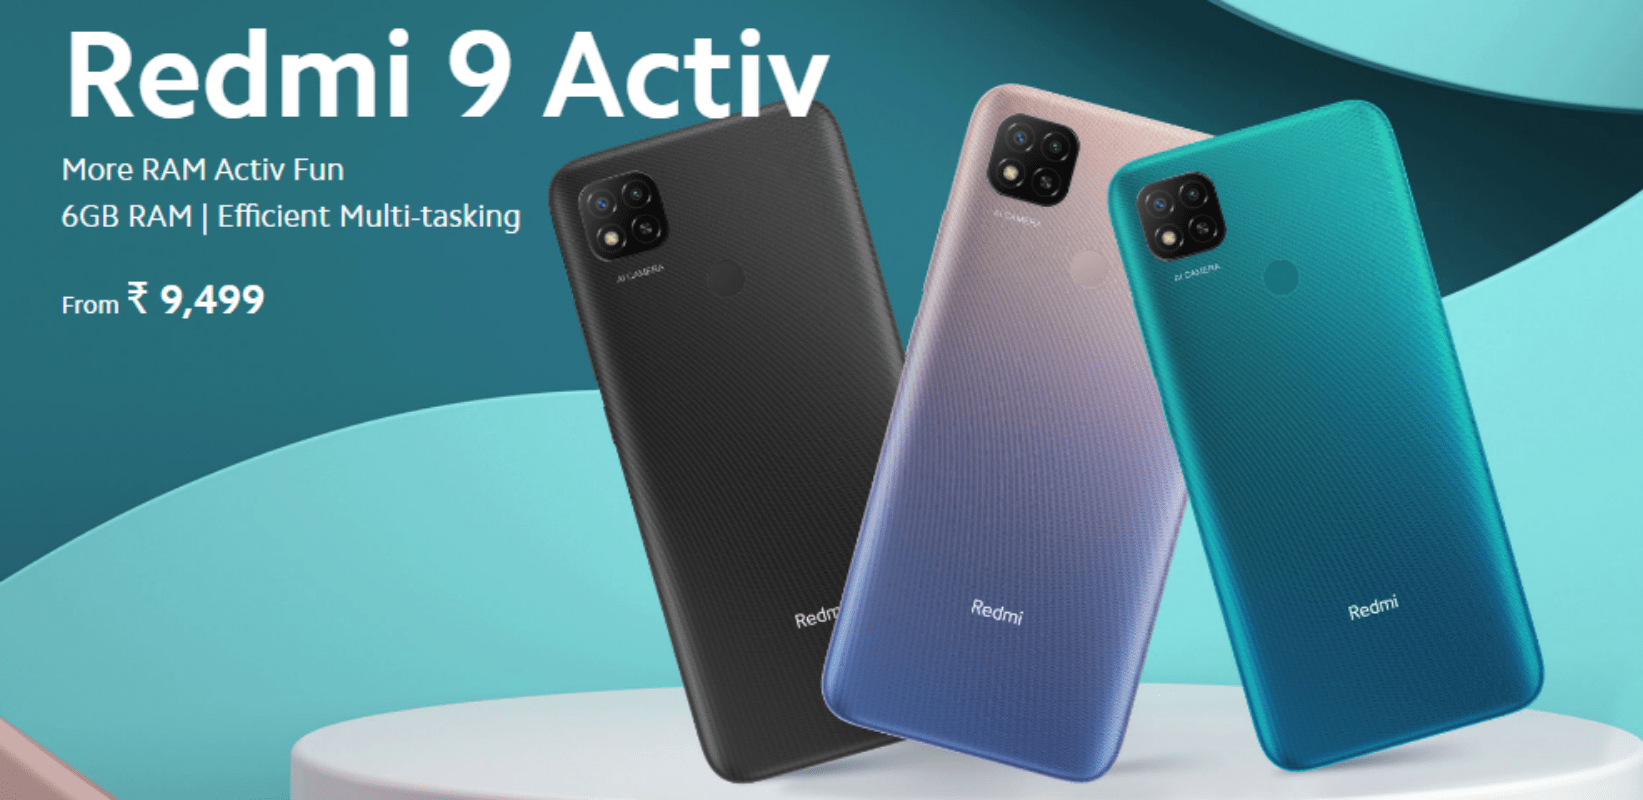 Realme 9 Activ Price in India and Specifications: from Camera to Processor, every specs you need to know of this newly launched smartphone